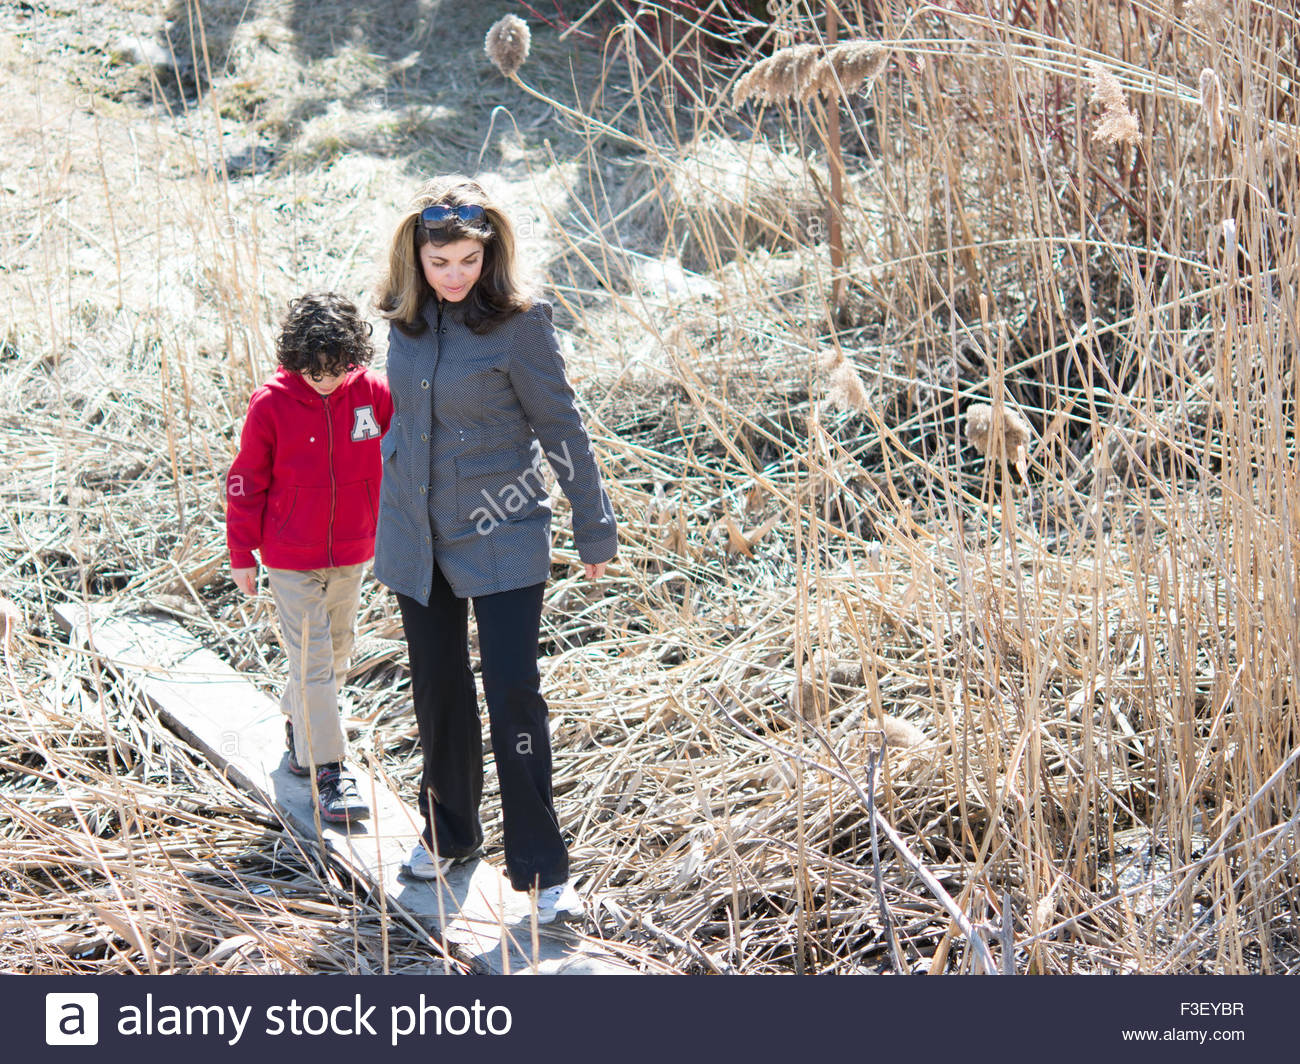 Mother guidance: Woman and child walk through a field.  She is wearing a gray jacket and holds hands with a boy - Stock Image